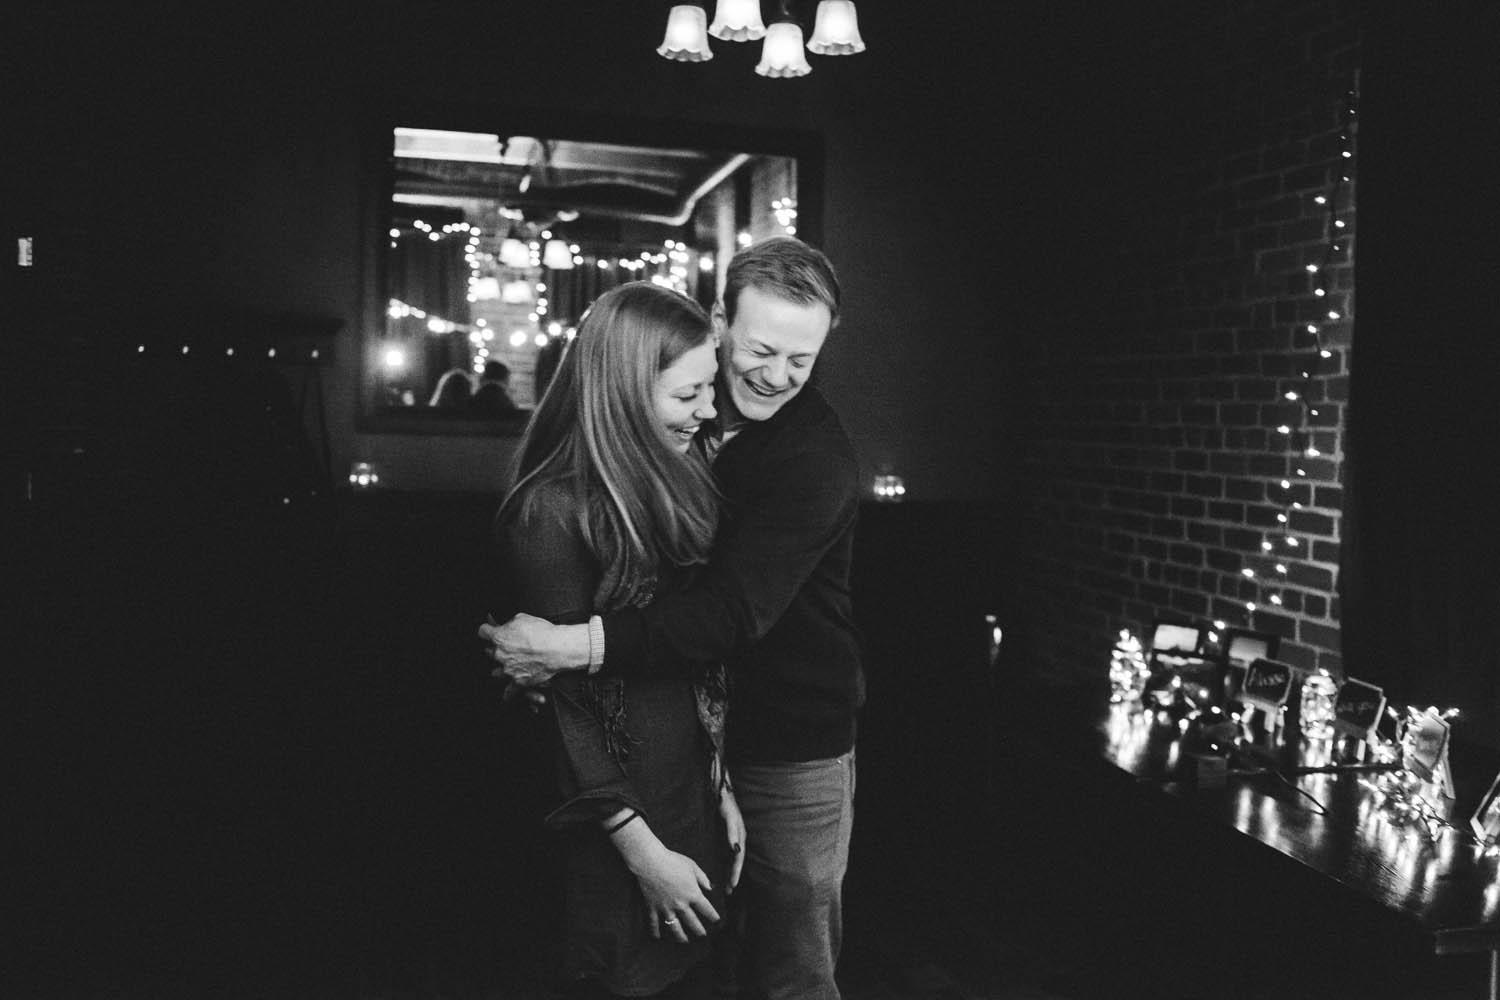 proposal-photos-minneapolis-bernadette-pollard-0025.jpg